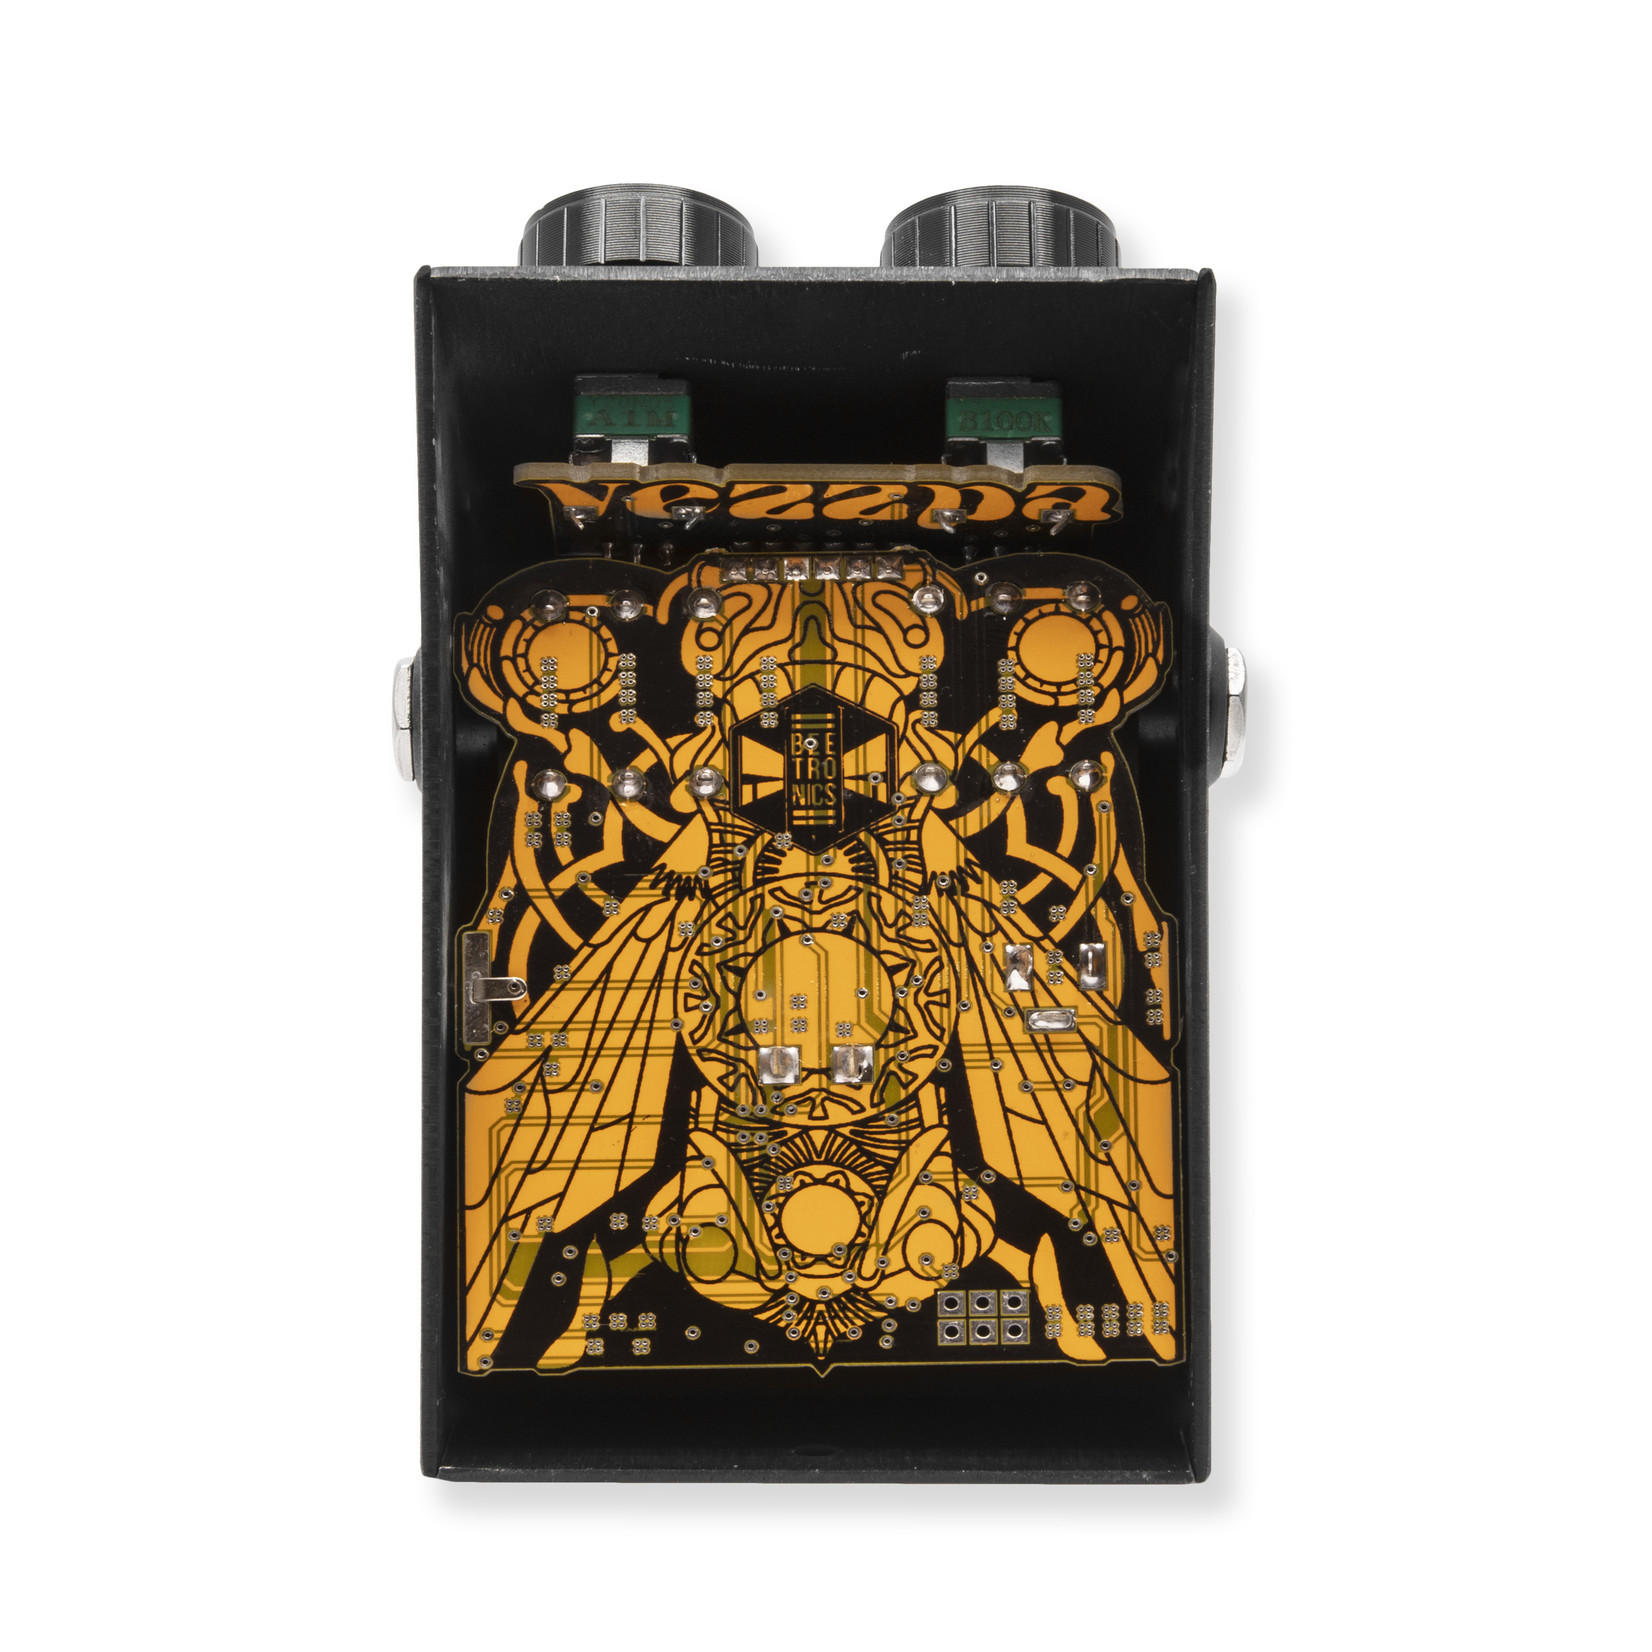 Beetronics Beetronics FX Vezzpa Fuzz (Babee series), OpAmp with Octave and Momentary Switching-In Stock, Shipping Now!